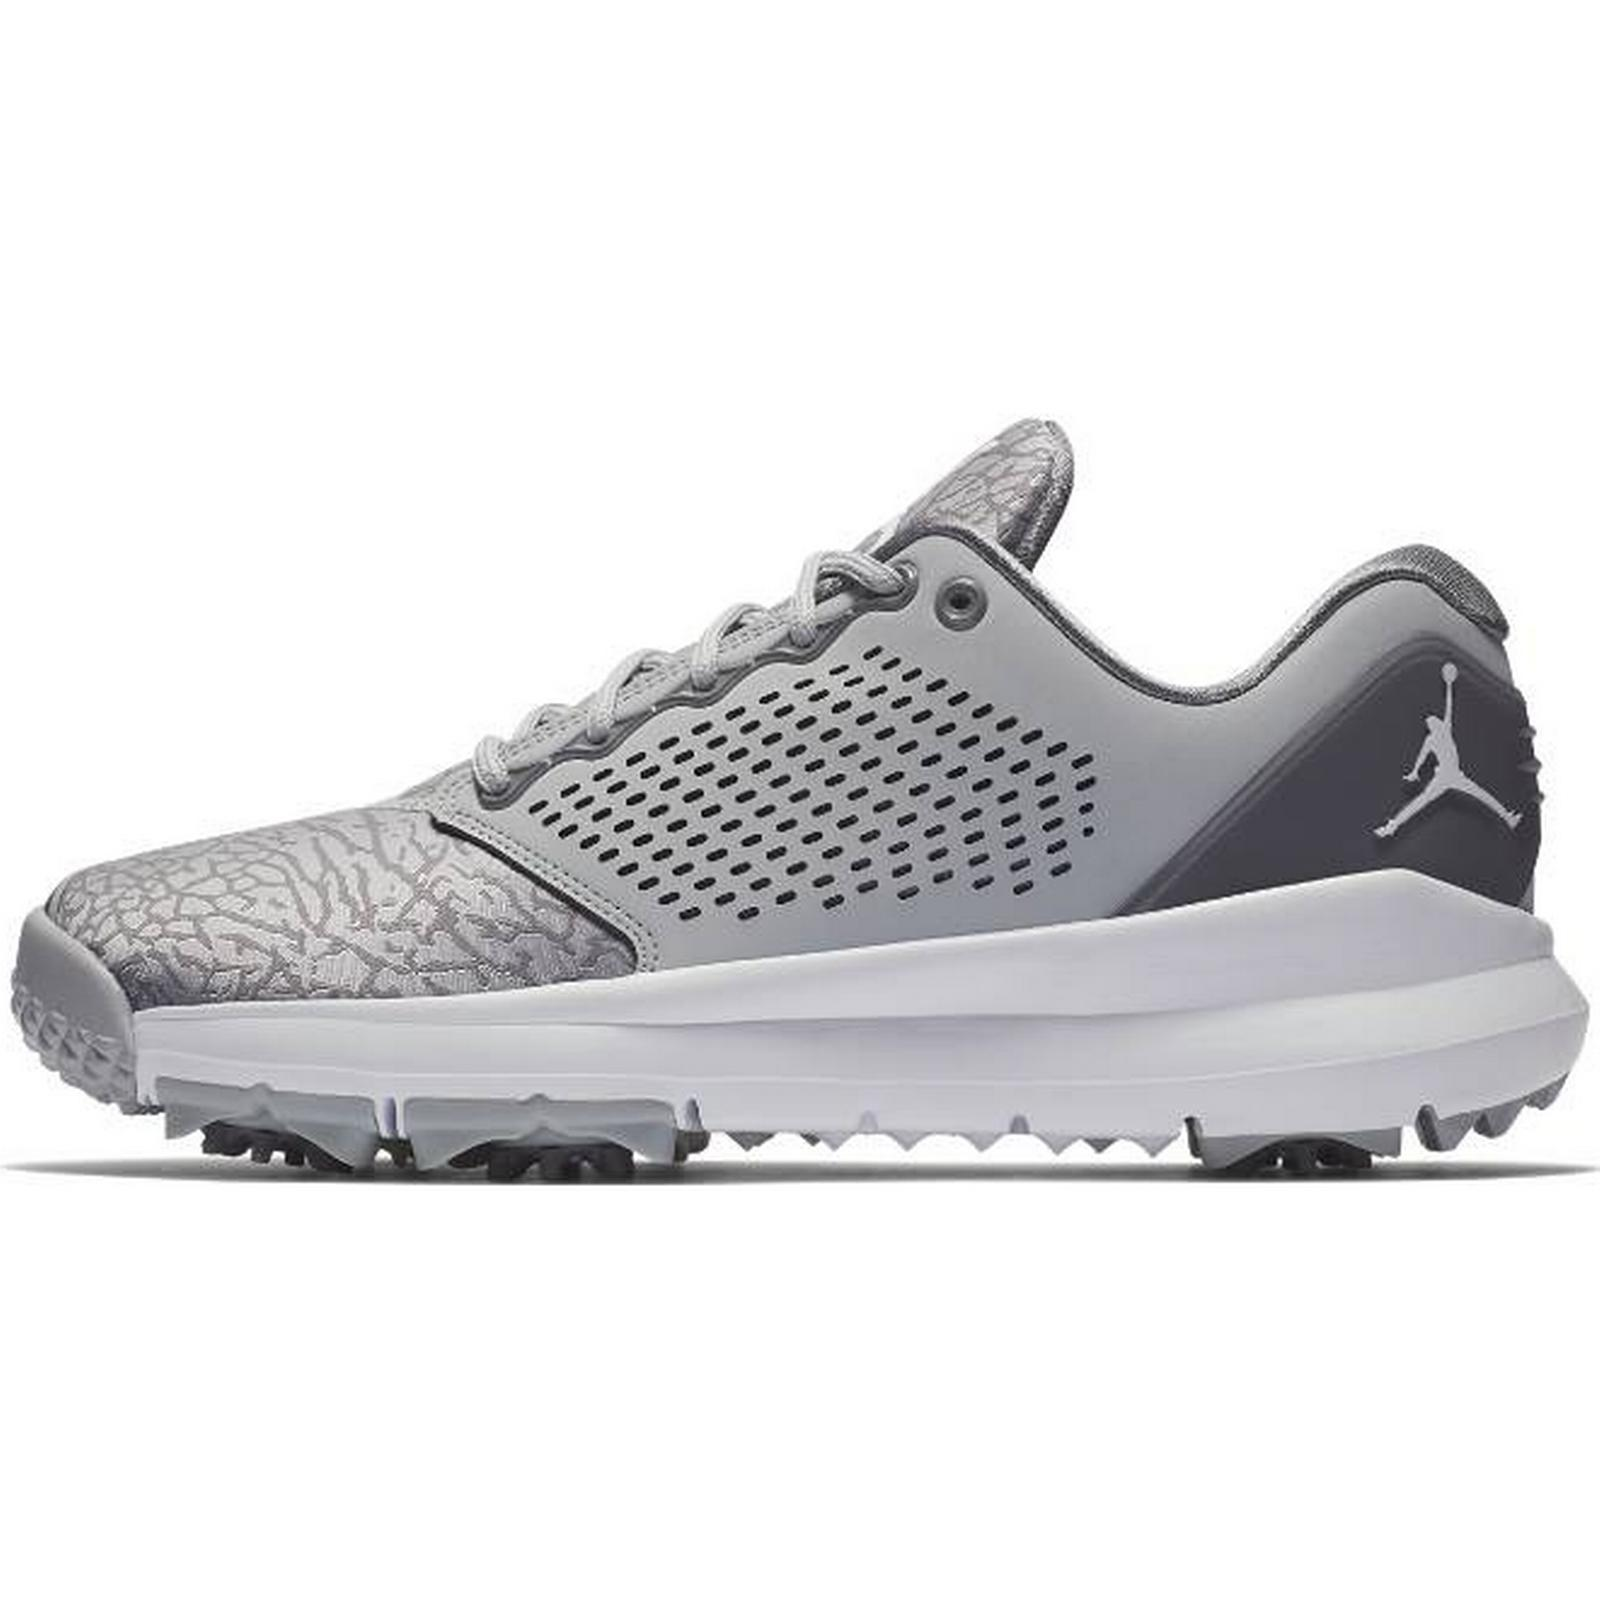 Men's/Women's: NIKE Męskie Trainer Buty Do Golfa Jordan Trainer Męskie ST G:  Comfortable feel ec4254